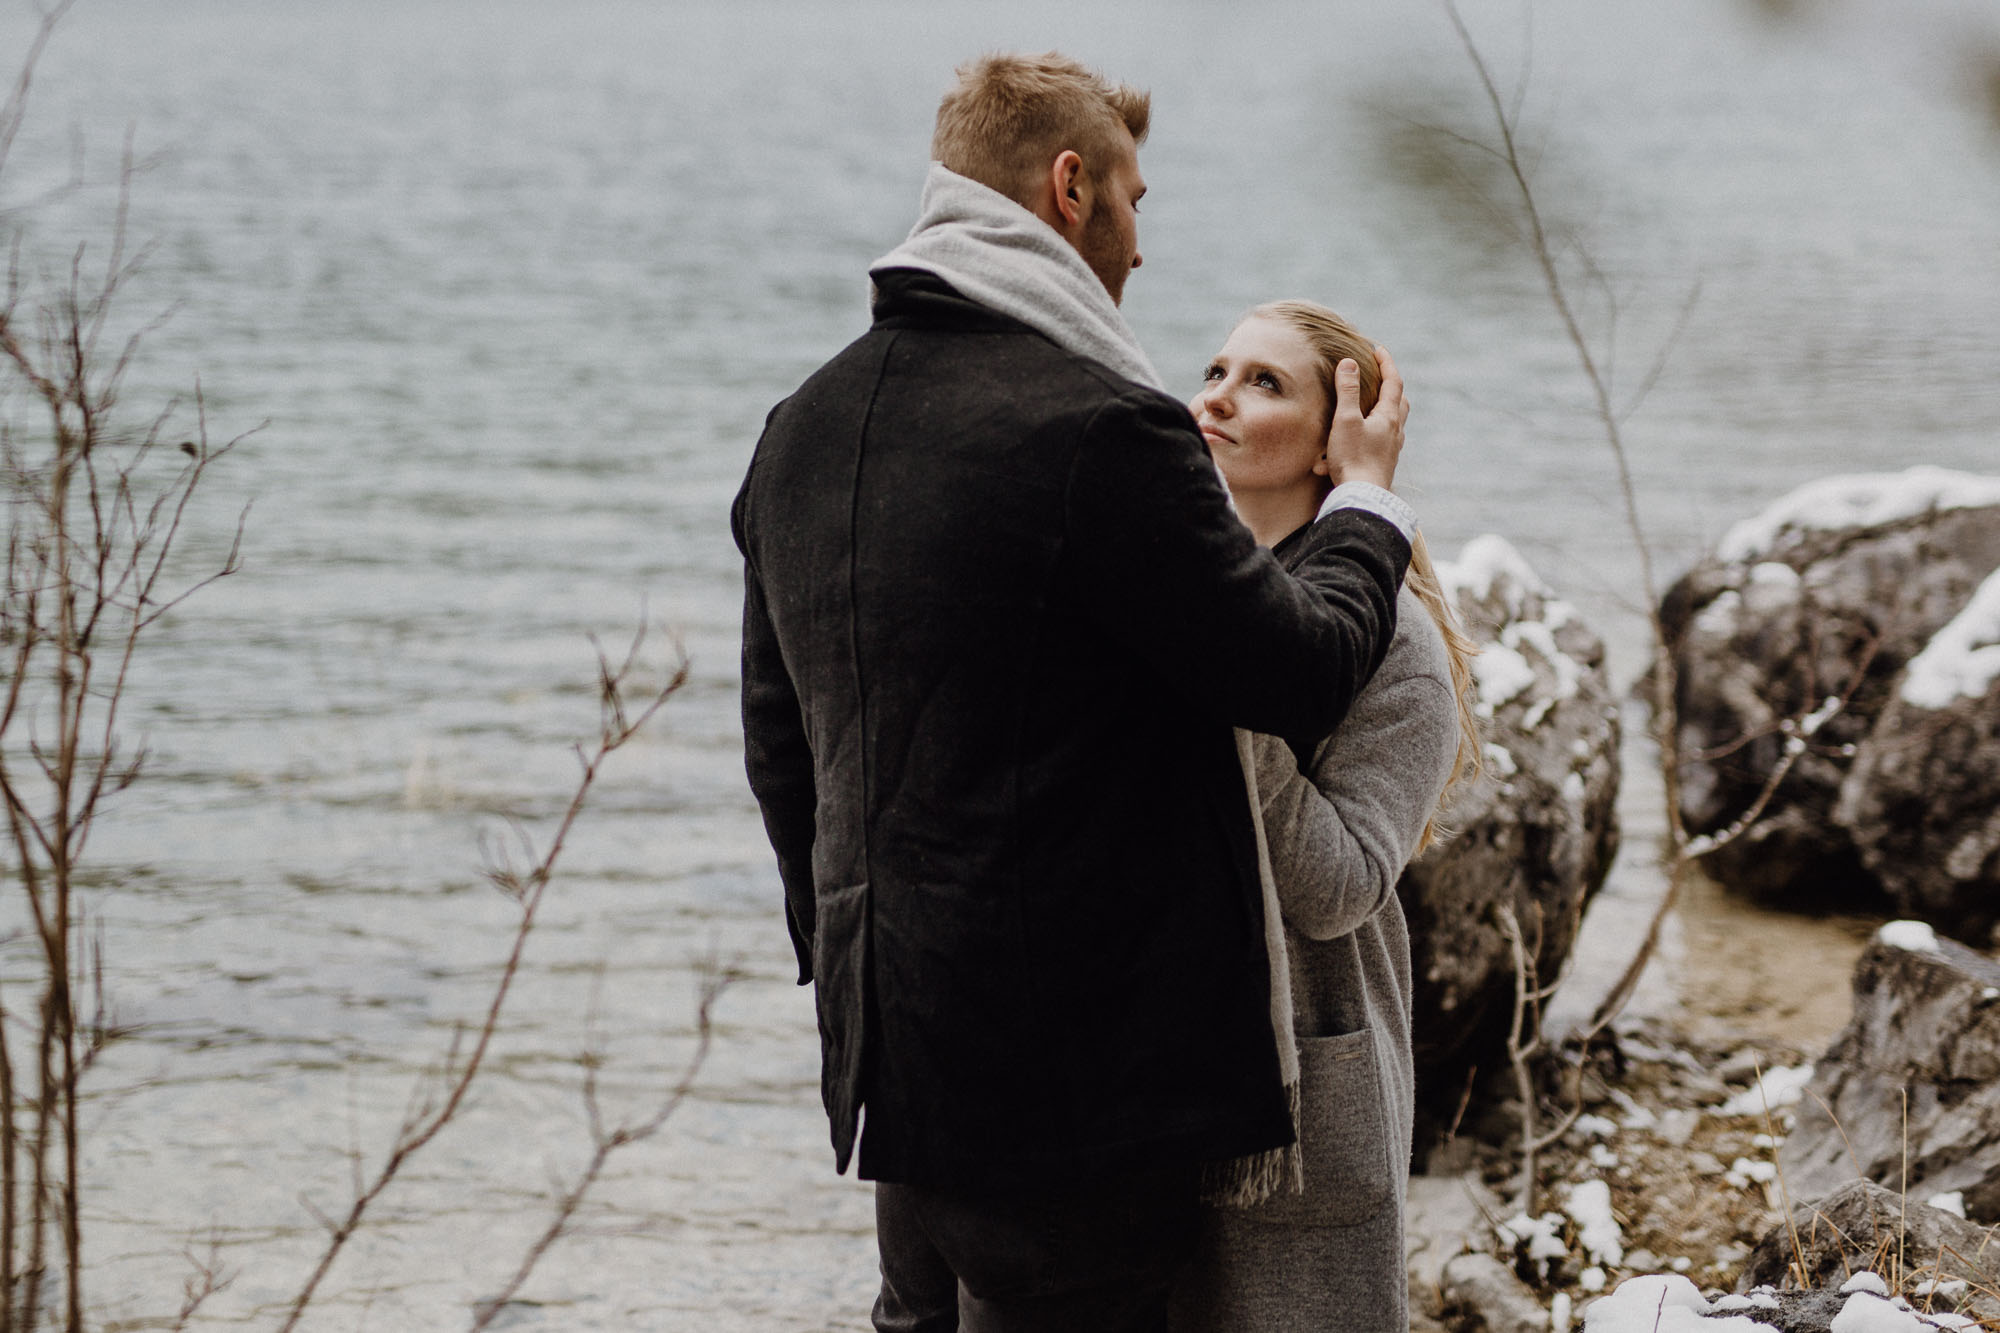 raissa simon photography destination couple munich eibsee 040 - Laura + Dominik